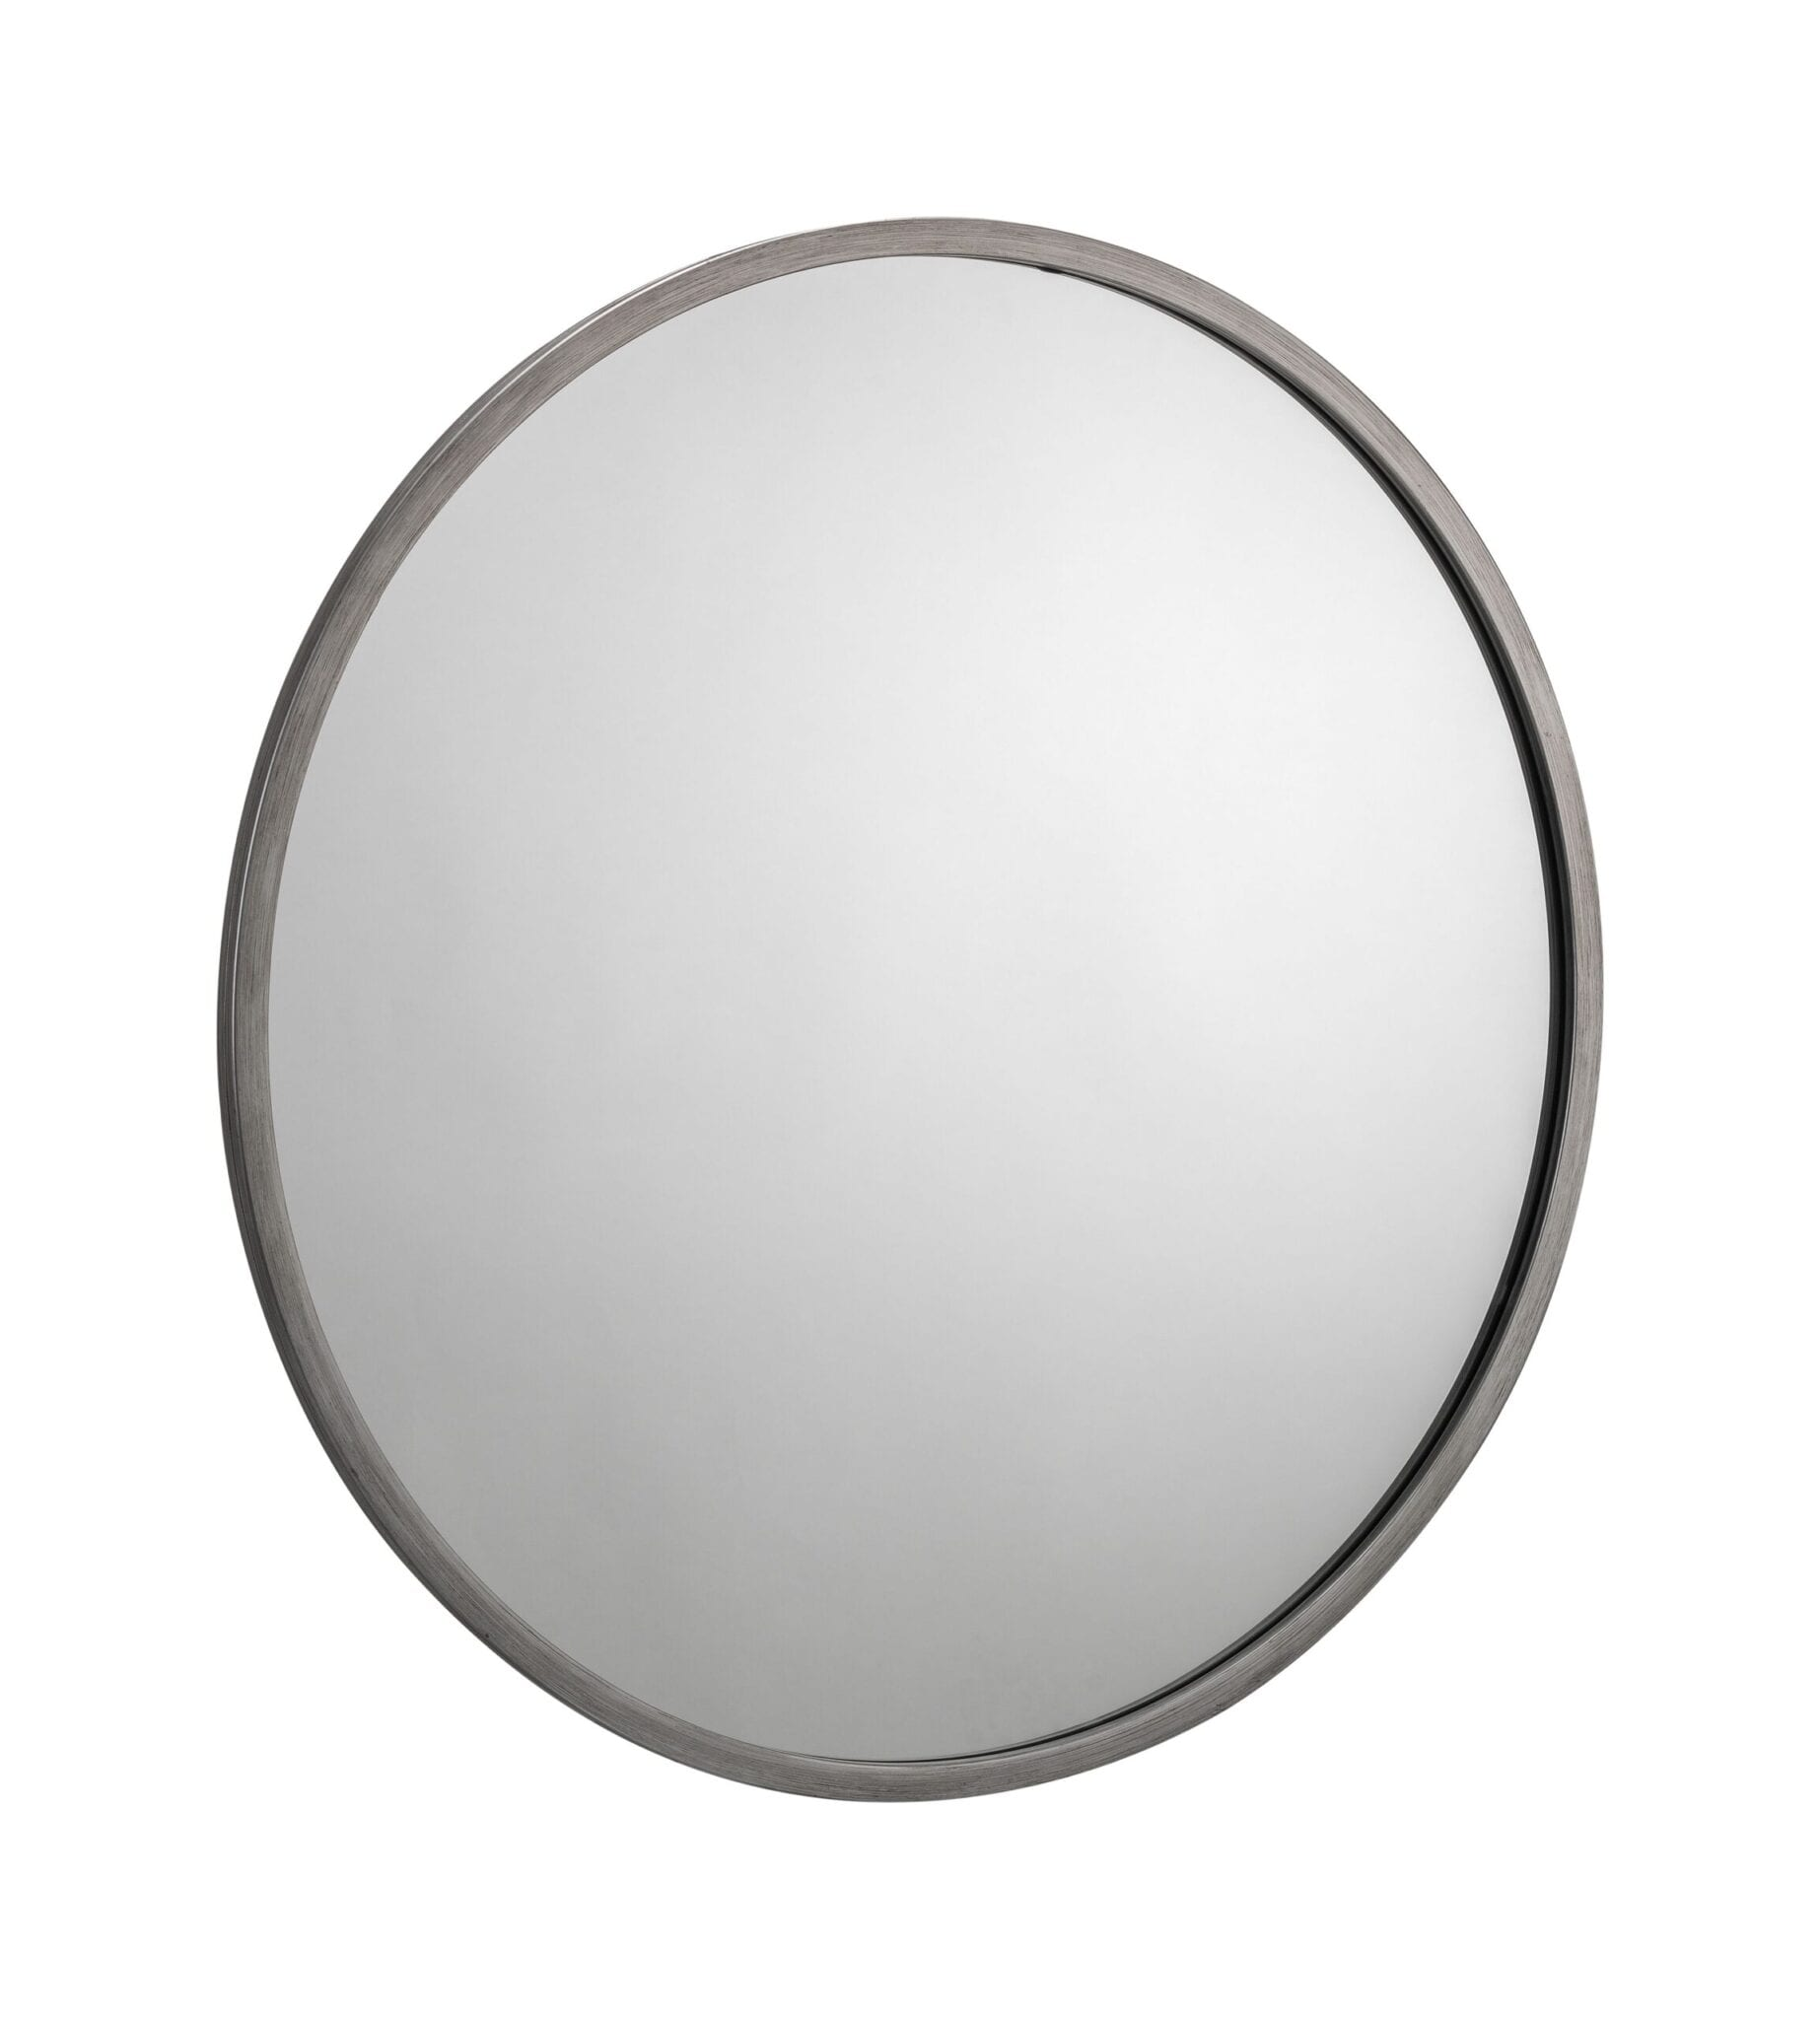 Mordent Round Pewter Wall Mirror